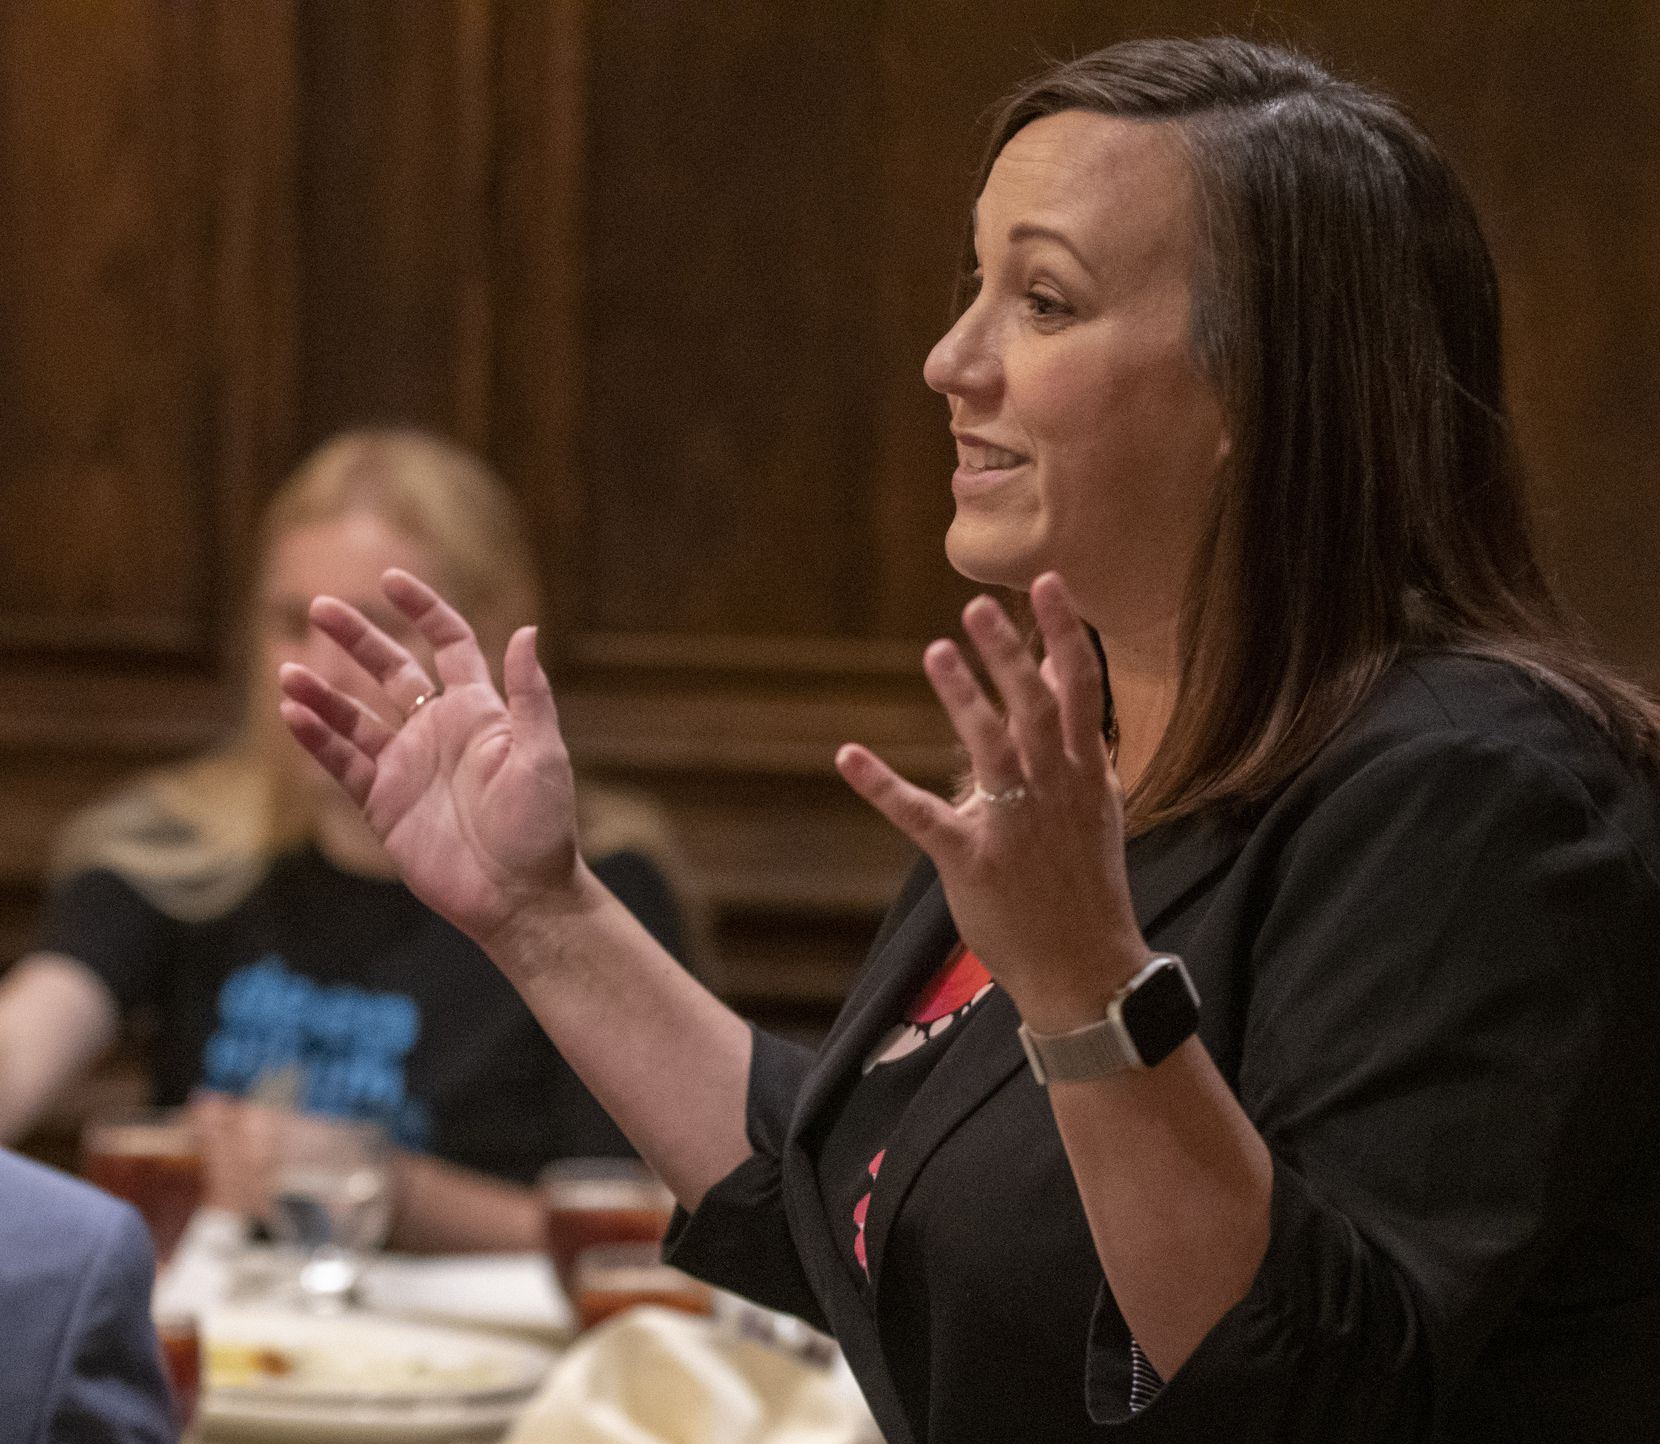 U.S. Senate candidate MJ Hegar speaks with attendees at the Dallas County Democratic Party luncheon where she was a guest speaker on July 24, 2019 at Maggiano's Little Italy restaurant at Northpark Center in Dallas, Texas.